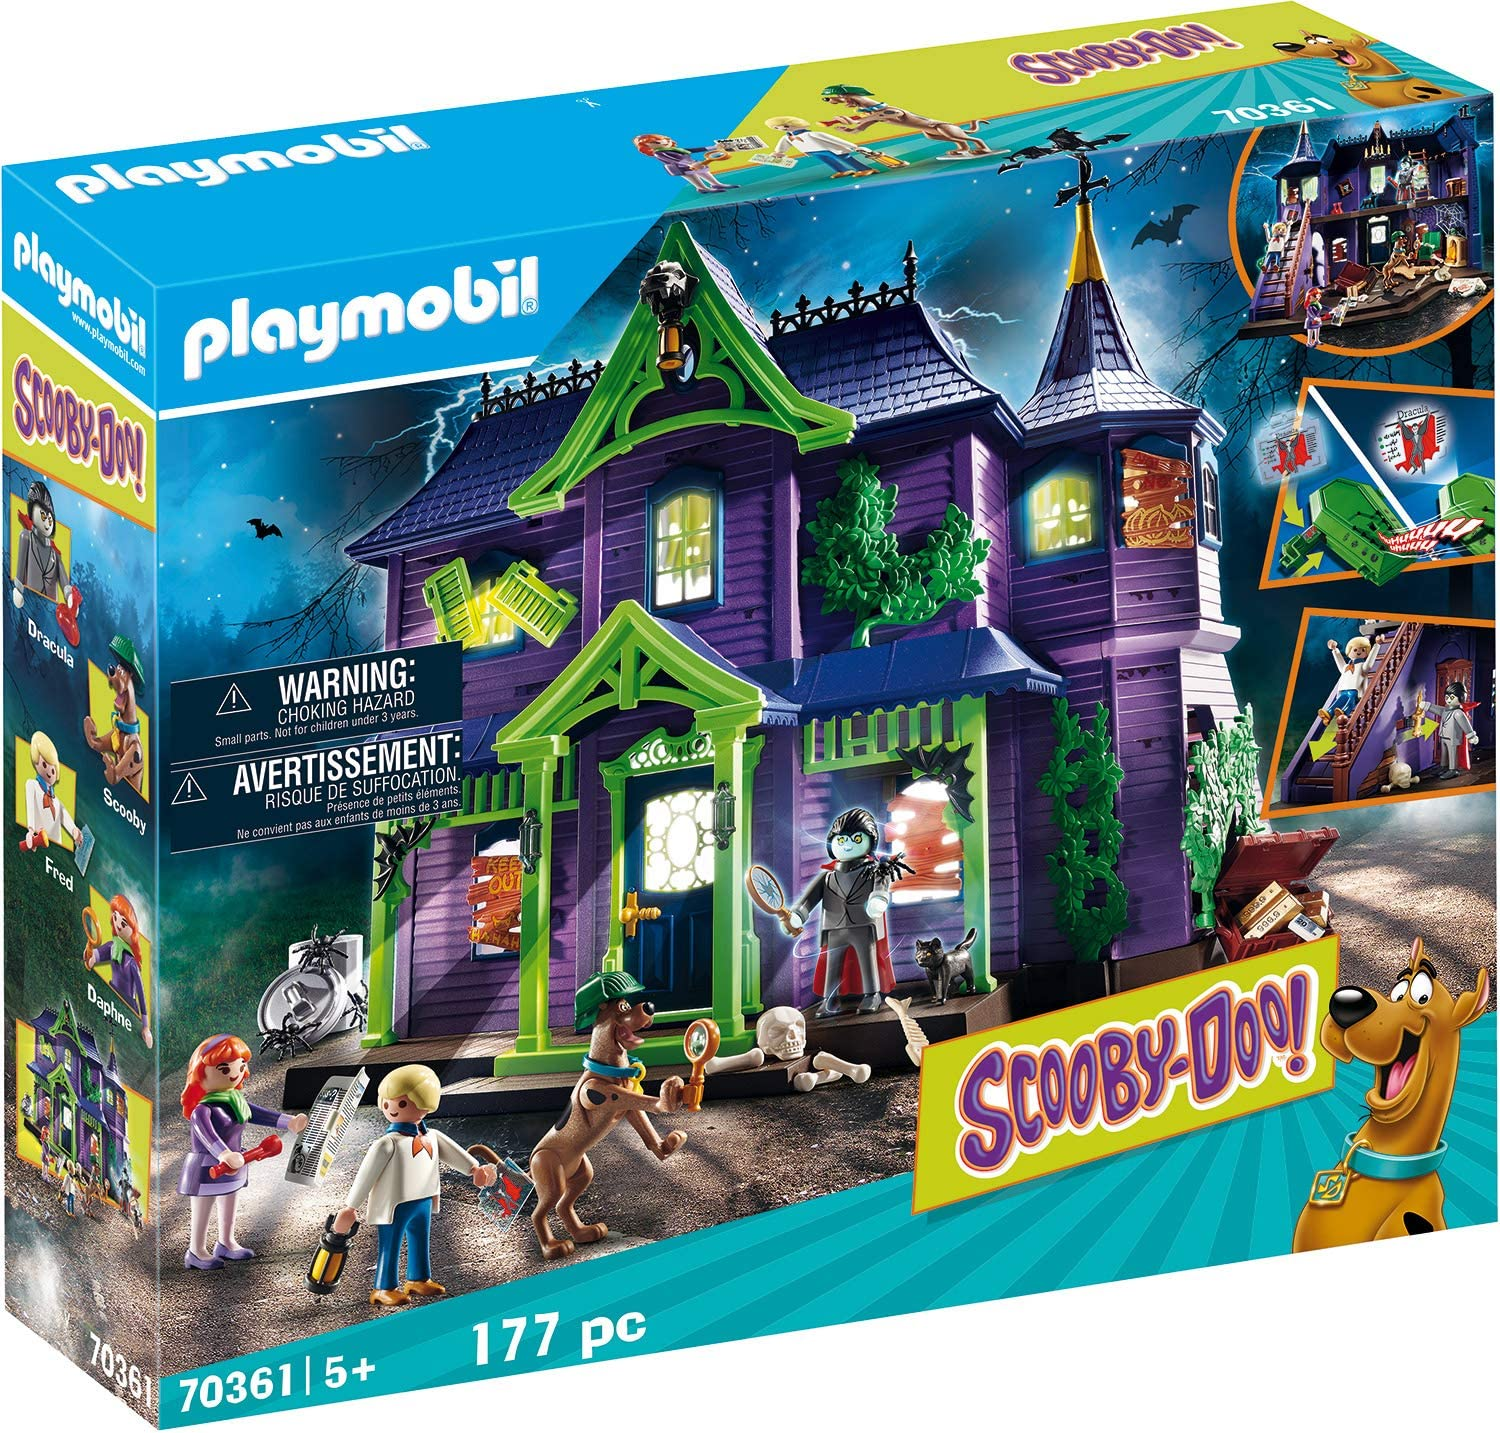 Playmobil - SCOOBY DOO! Aventura en la casa embrujada, Juguete, Color Multicolor, 70361: Amazon.es: Juguetes y juegos